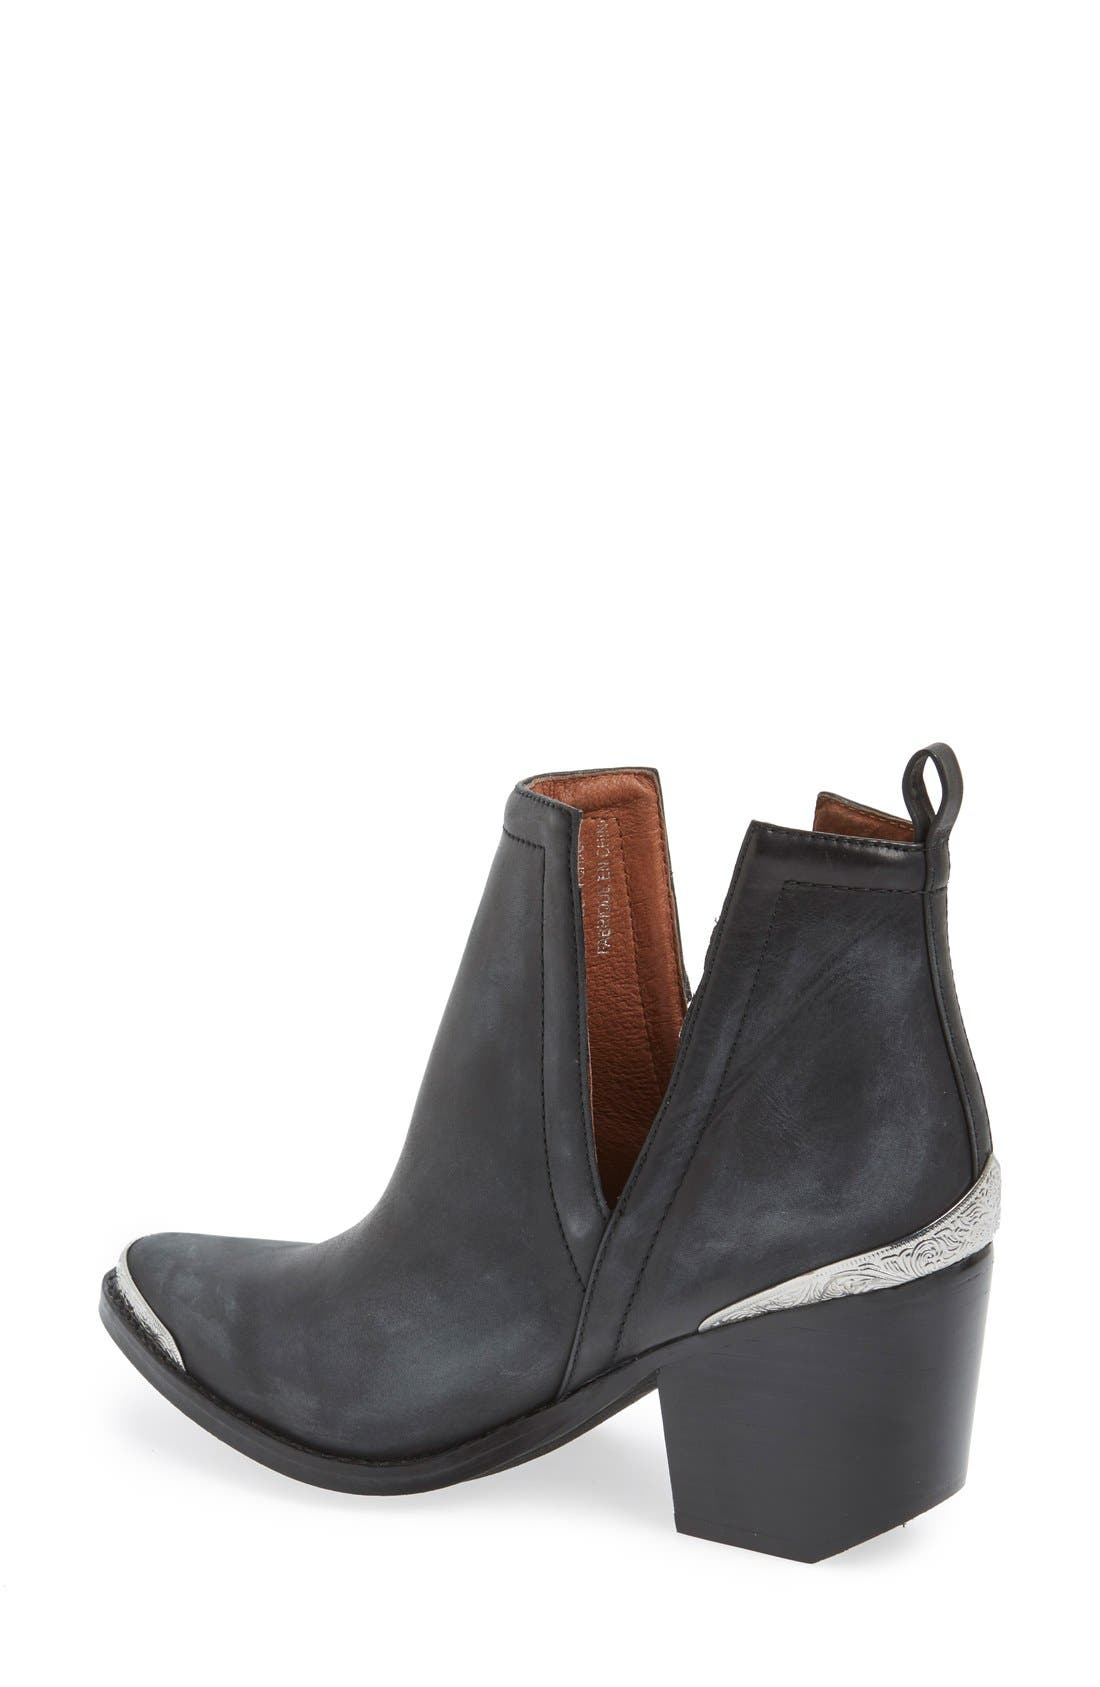 Cromwell Cutout Western Boot,                             Alternate thumbnail 8, color,                             BLACK DISTRESSED